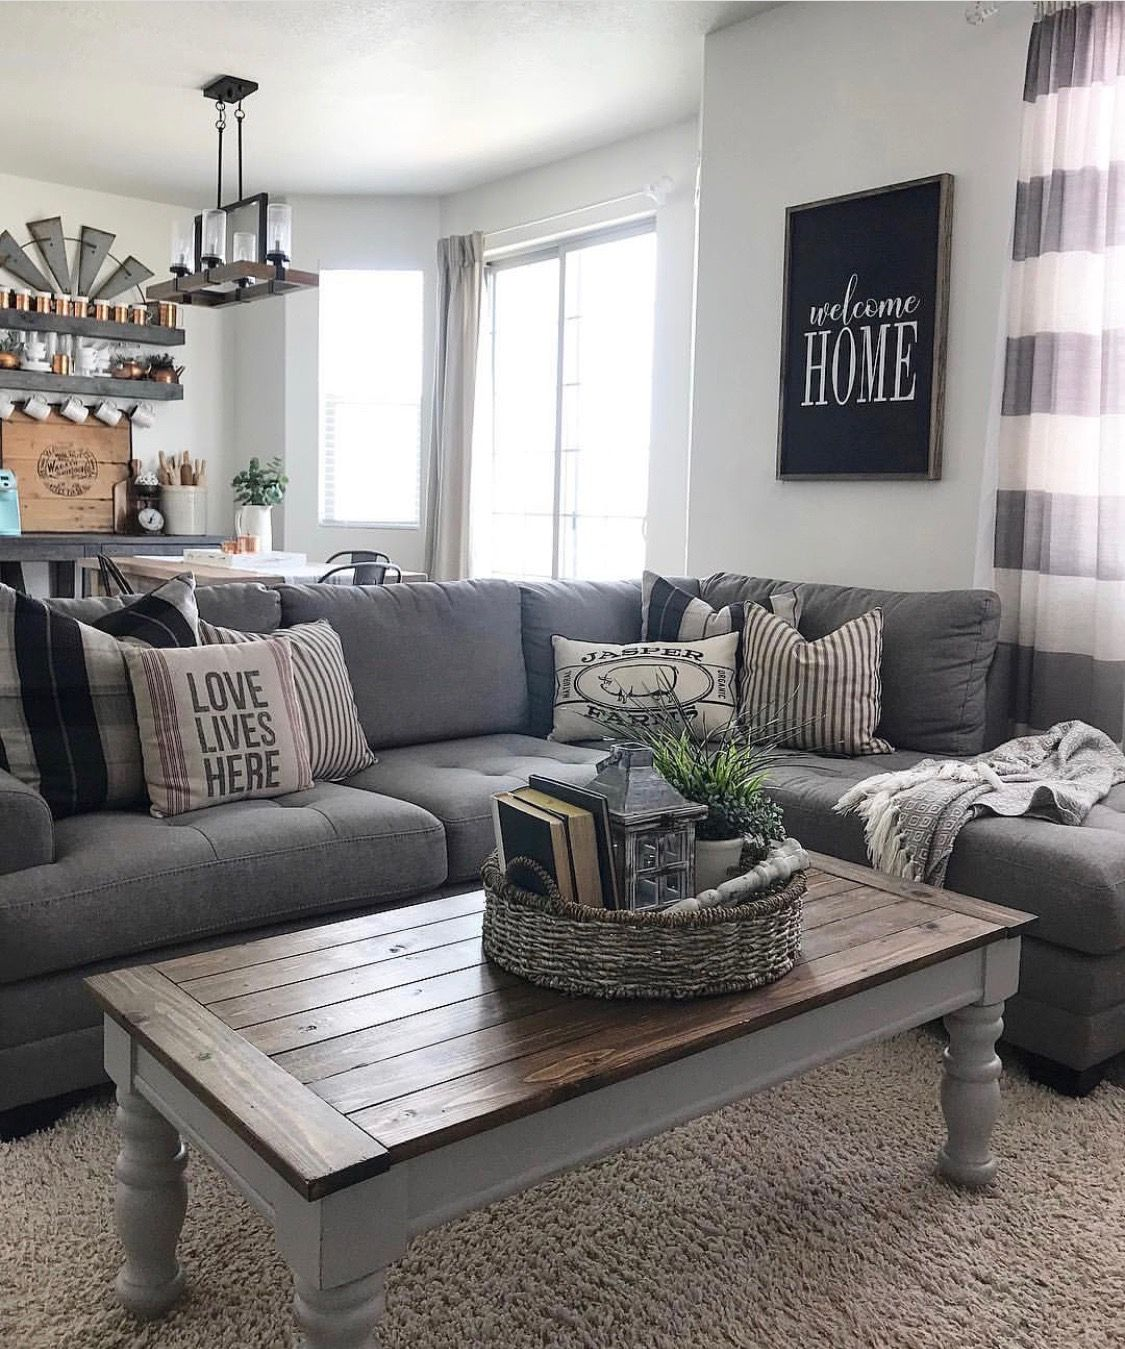 Pin By T On Things For Our Home Farmhouse Decor Living Room